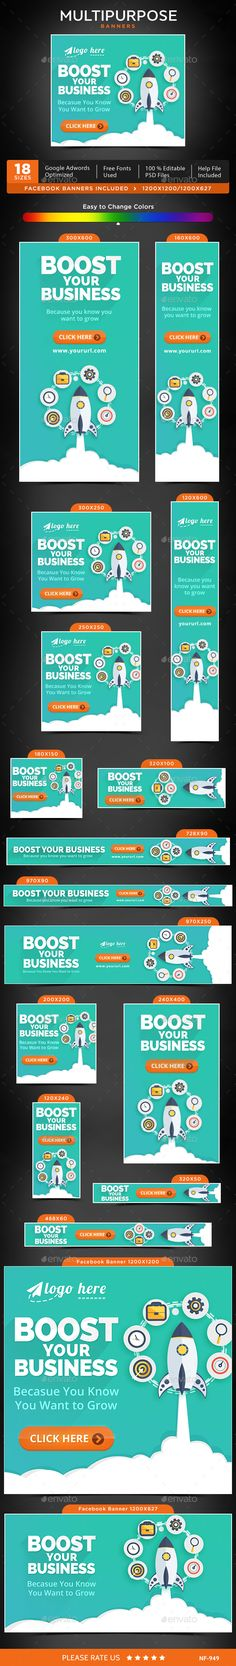 Multipurpose Web Banners Template PSD #ad #promotion #design Download: http://graphicriver.net/item/multipurpose-banners/14276090?ref=ksioks